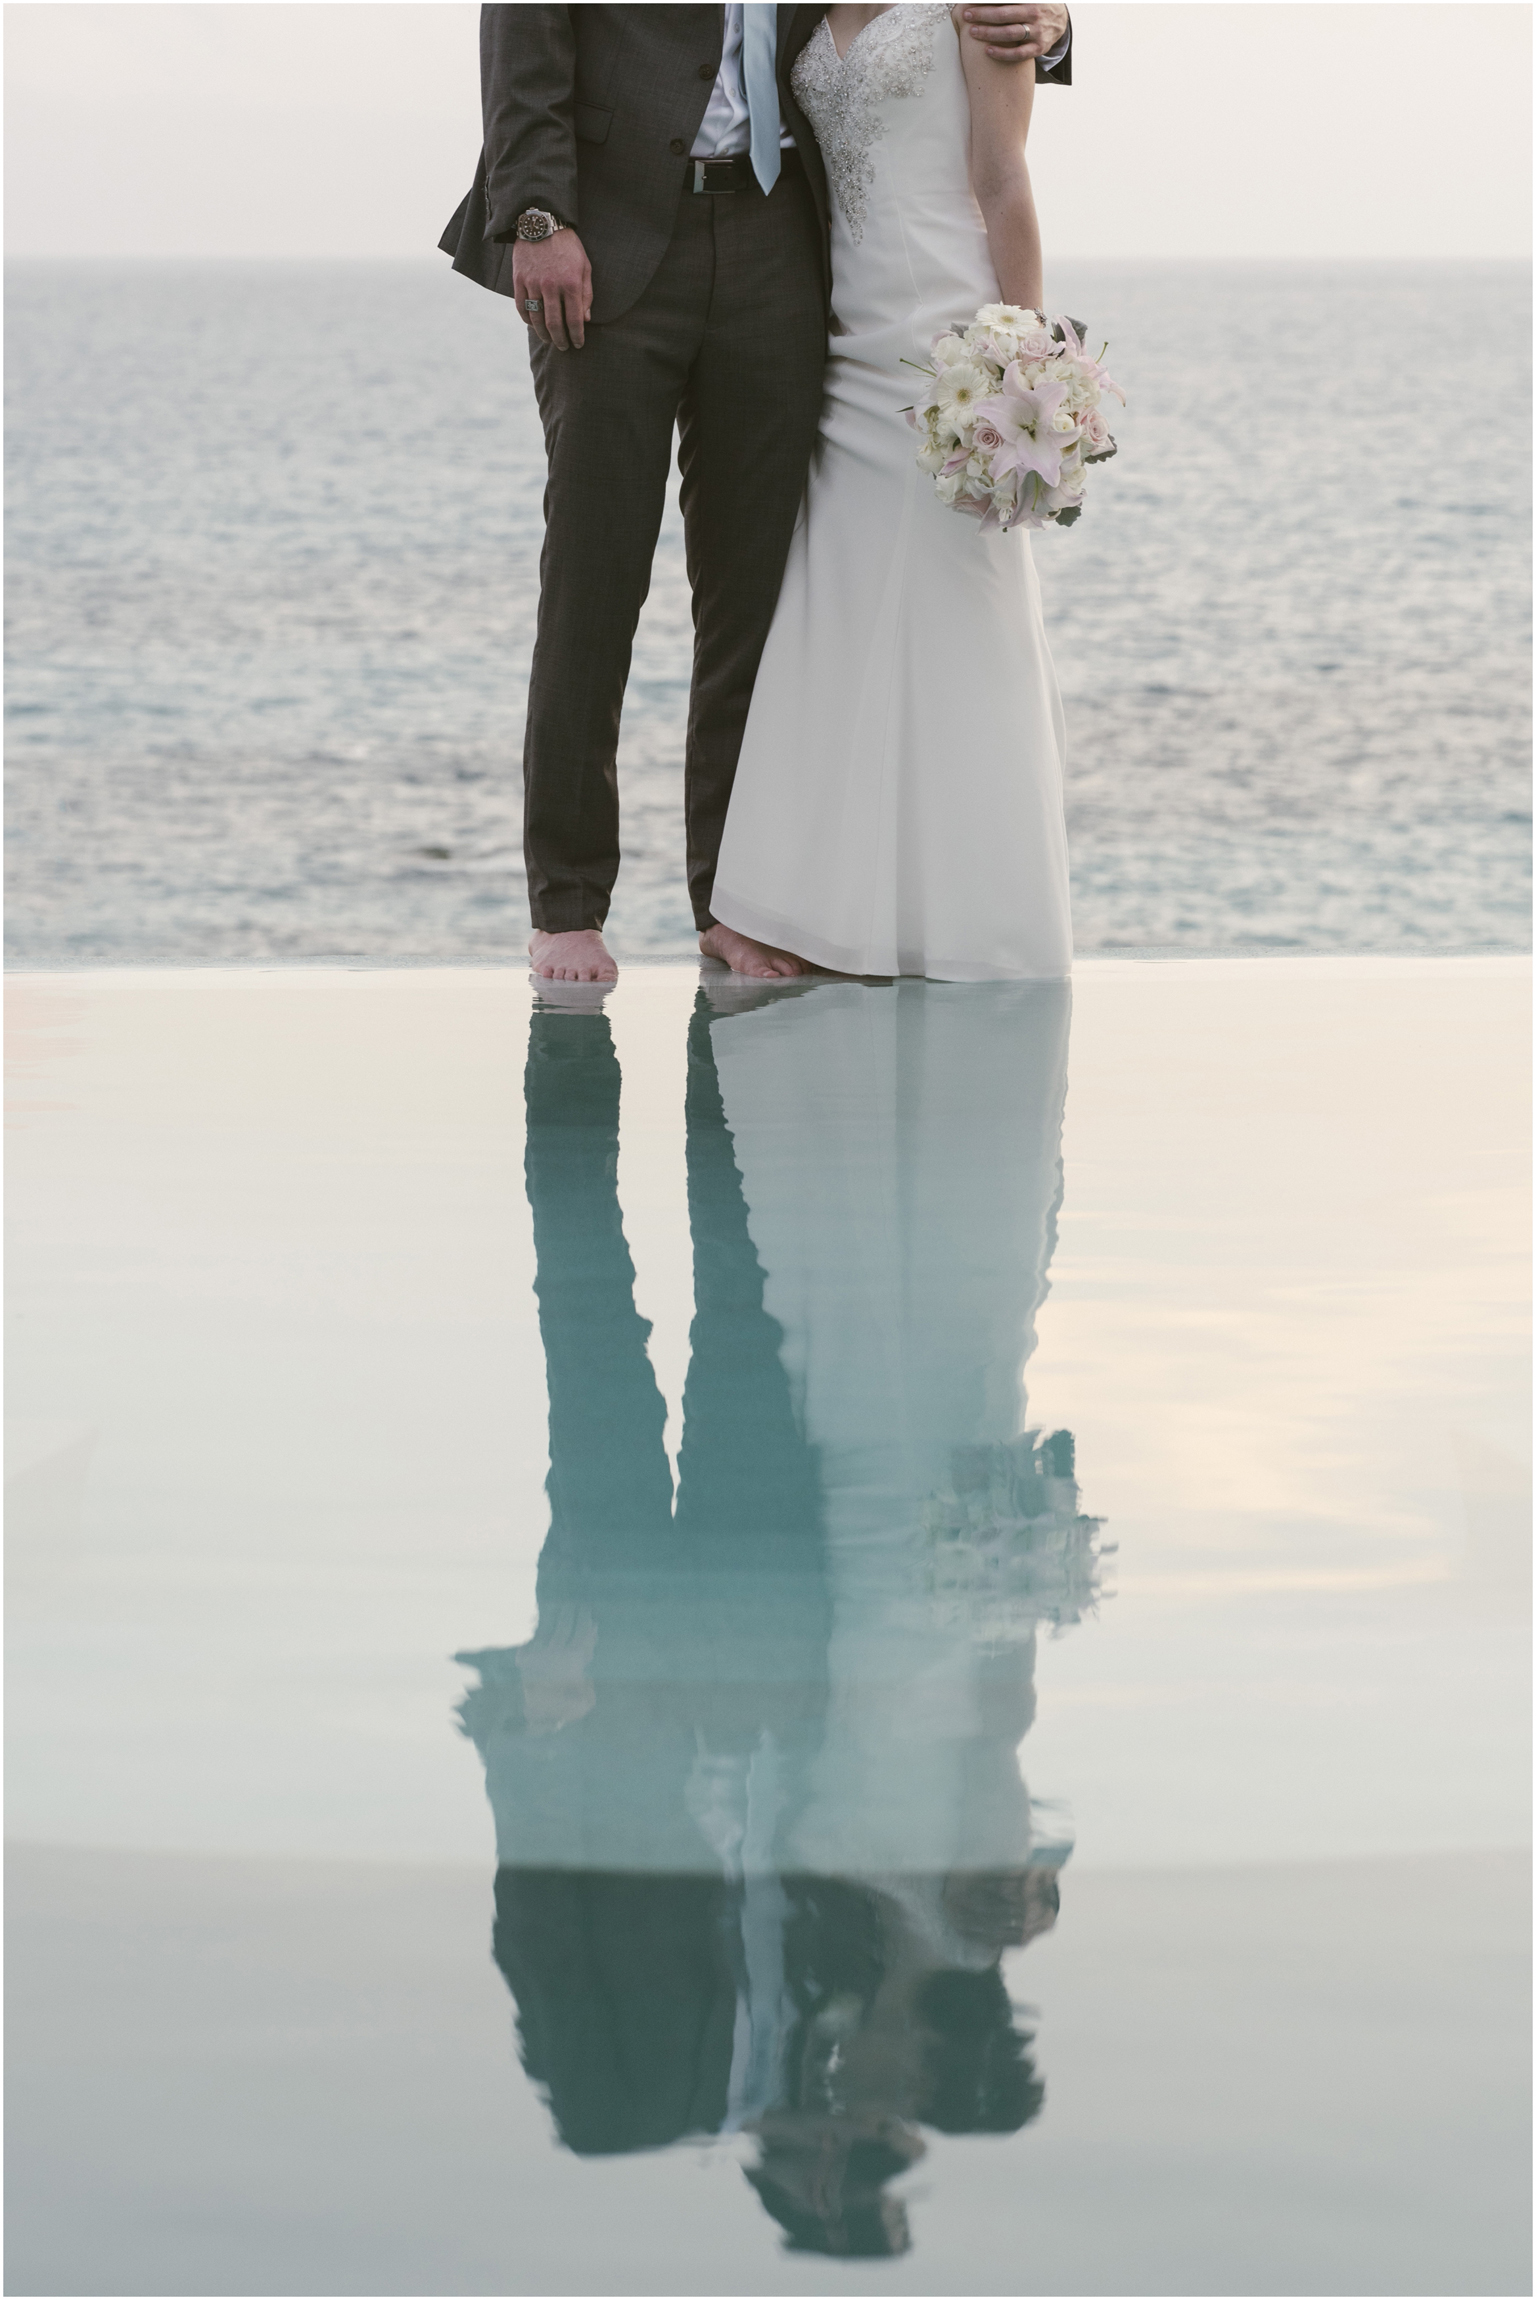 ©FianderFoto_Caribbean_Wedding_Photographer_The Reefs_Bermuda_Lauren_Erik_088.jpg